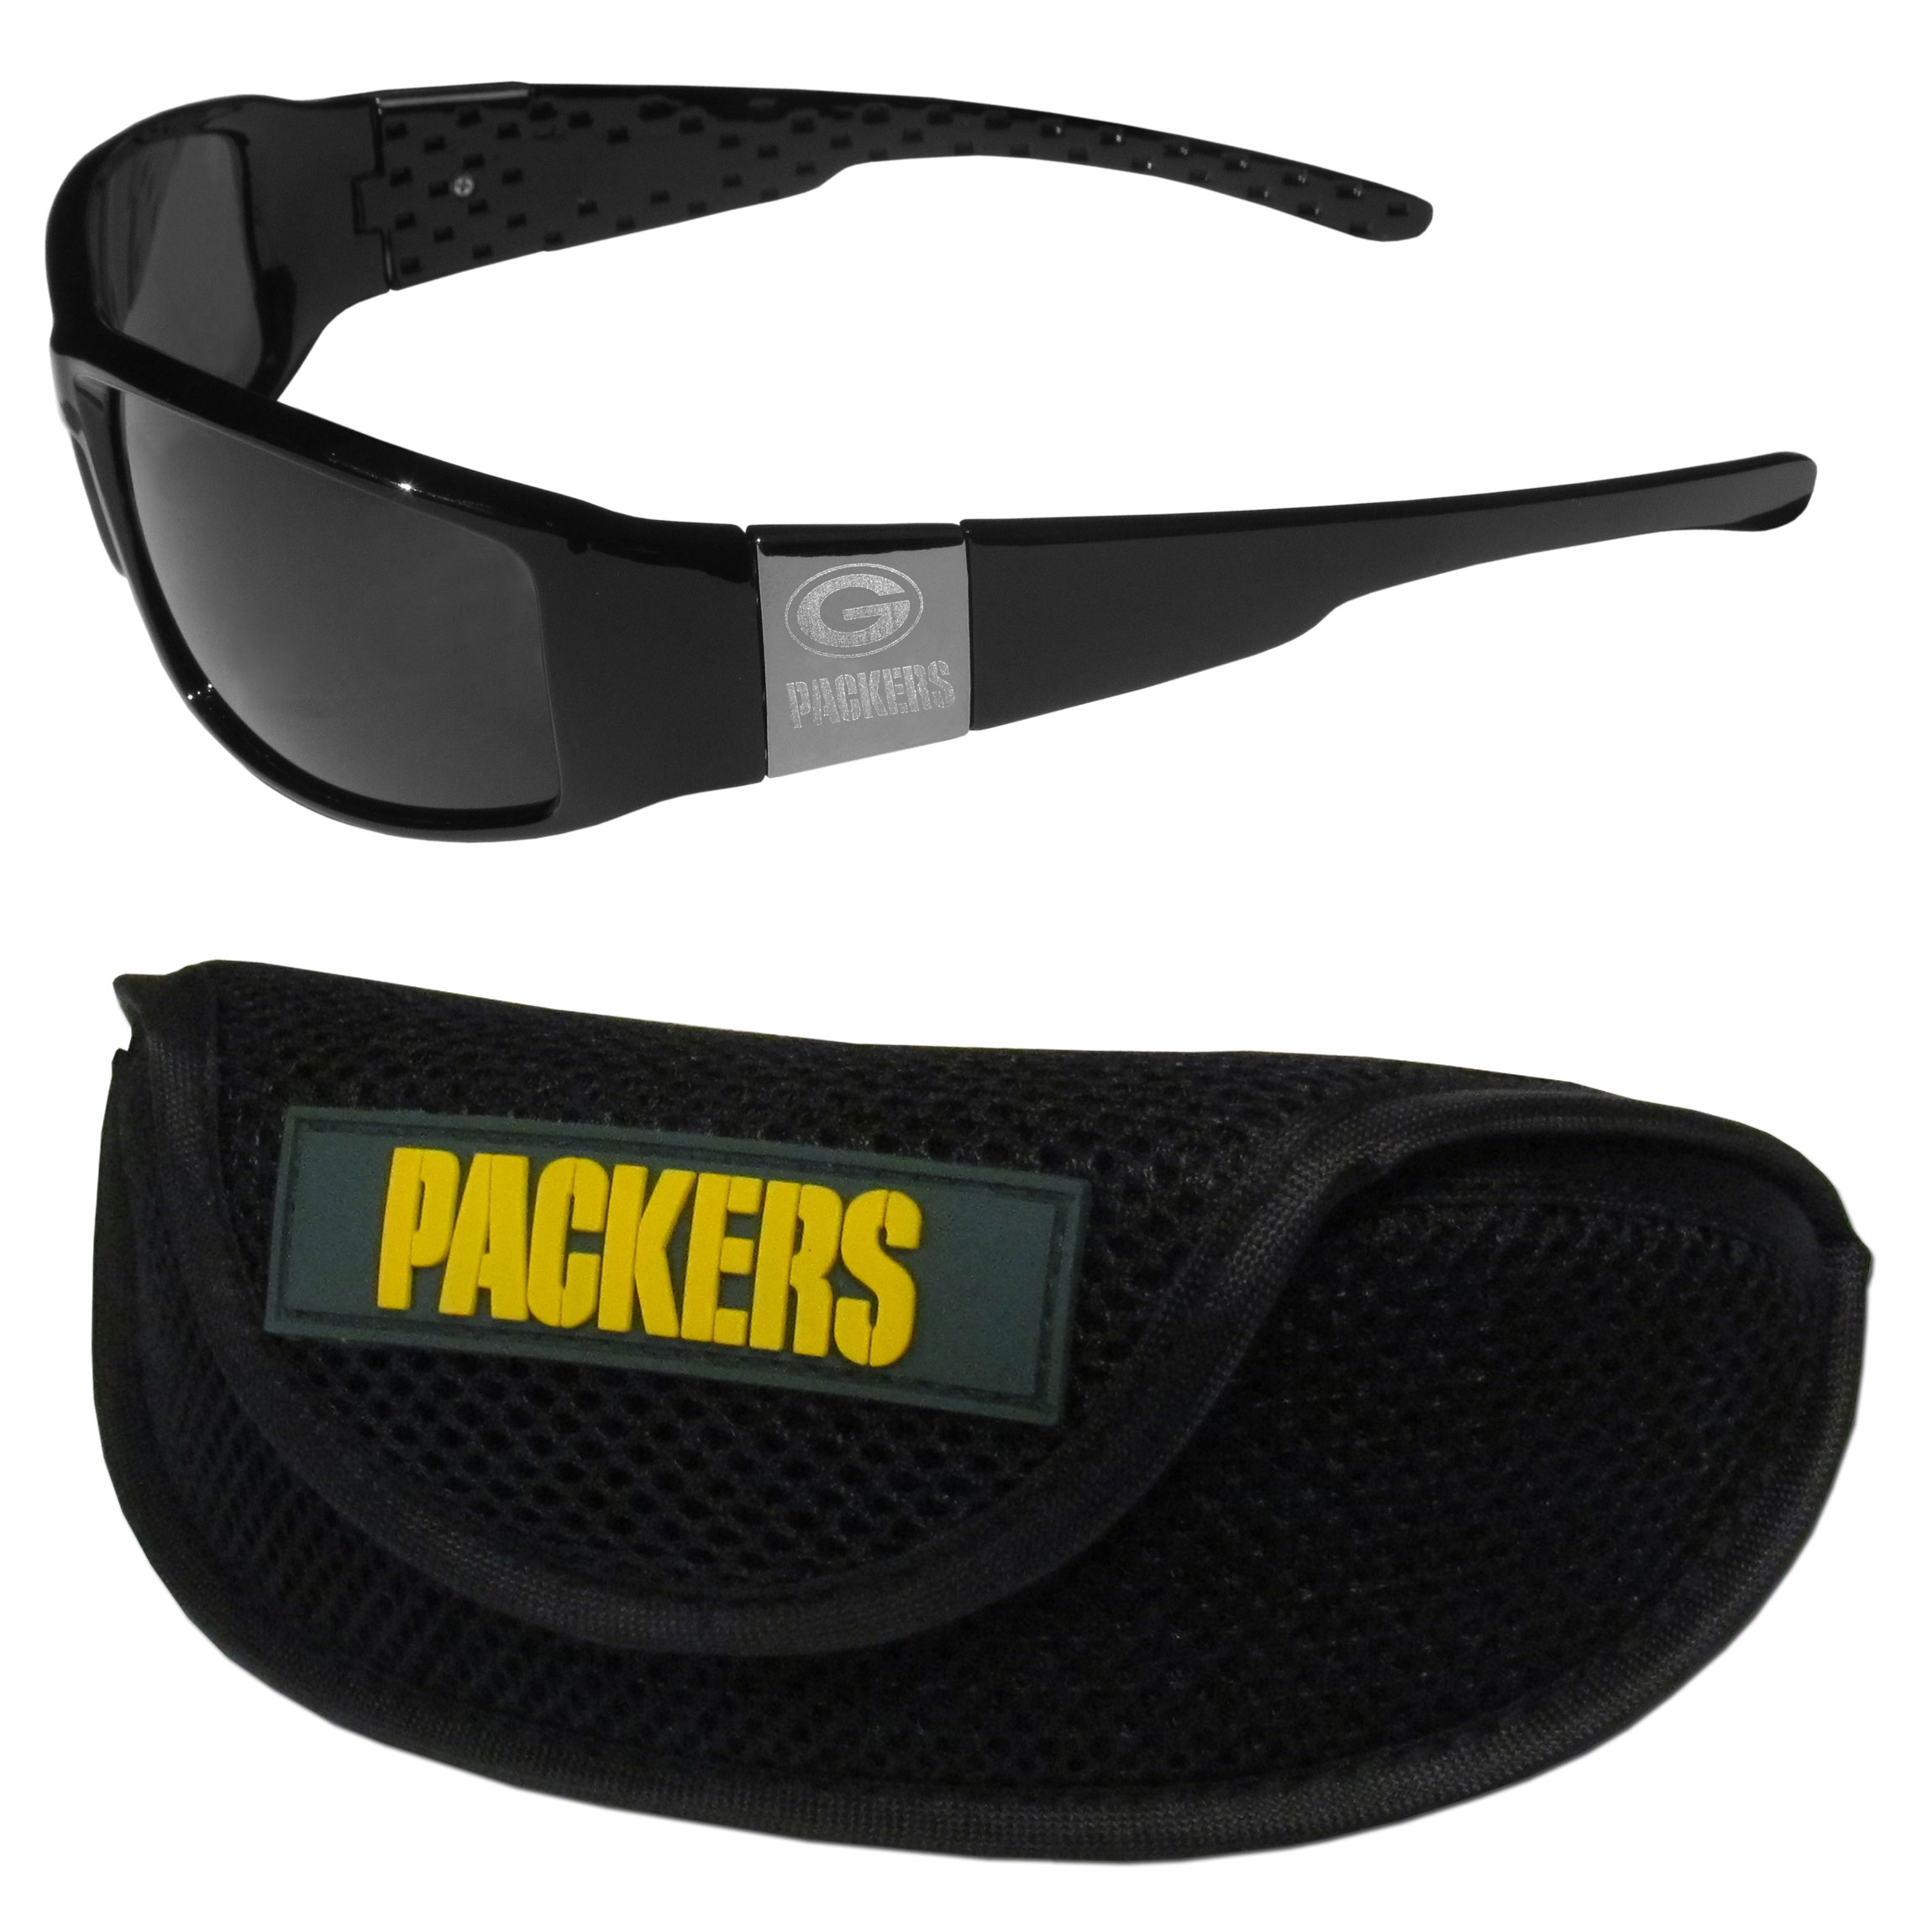 Green Bay Packers Chrome Wrap Sunglasses and Sports Case - Our sleek and stylish Green Bay Packers chrome wrap sunglasses and our sporty mesh case. The sunglasses feature etched team logos on each arm and 100% UVA/UVB protection. The case features a large and colorful team emblem.